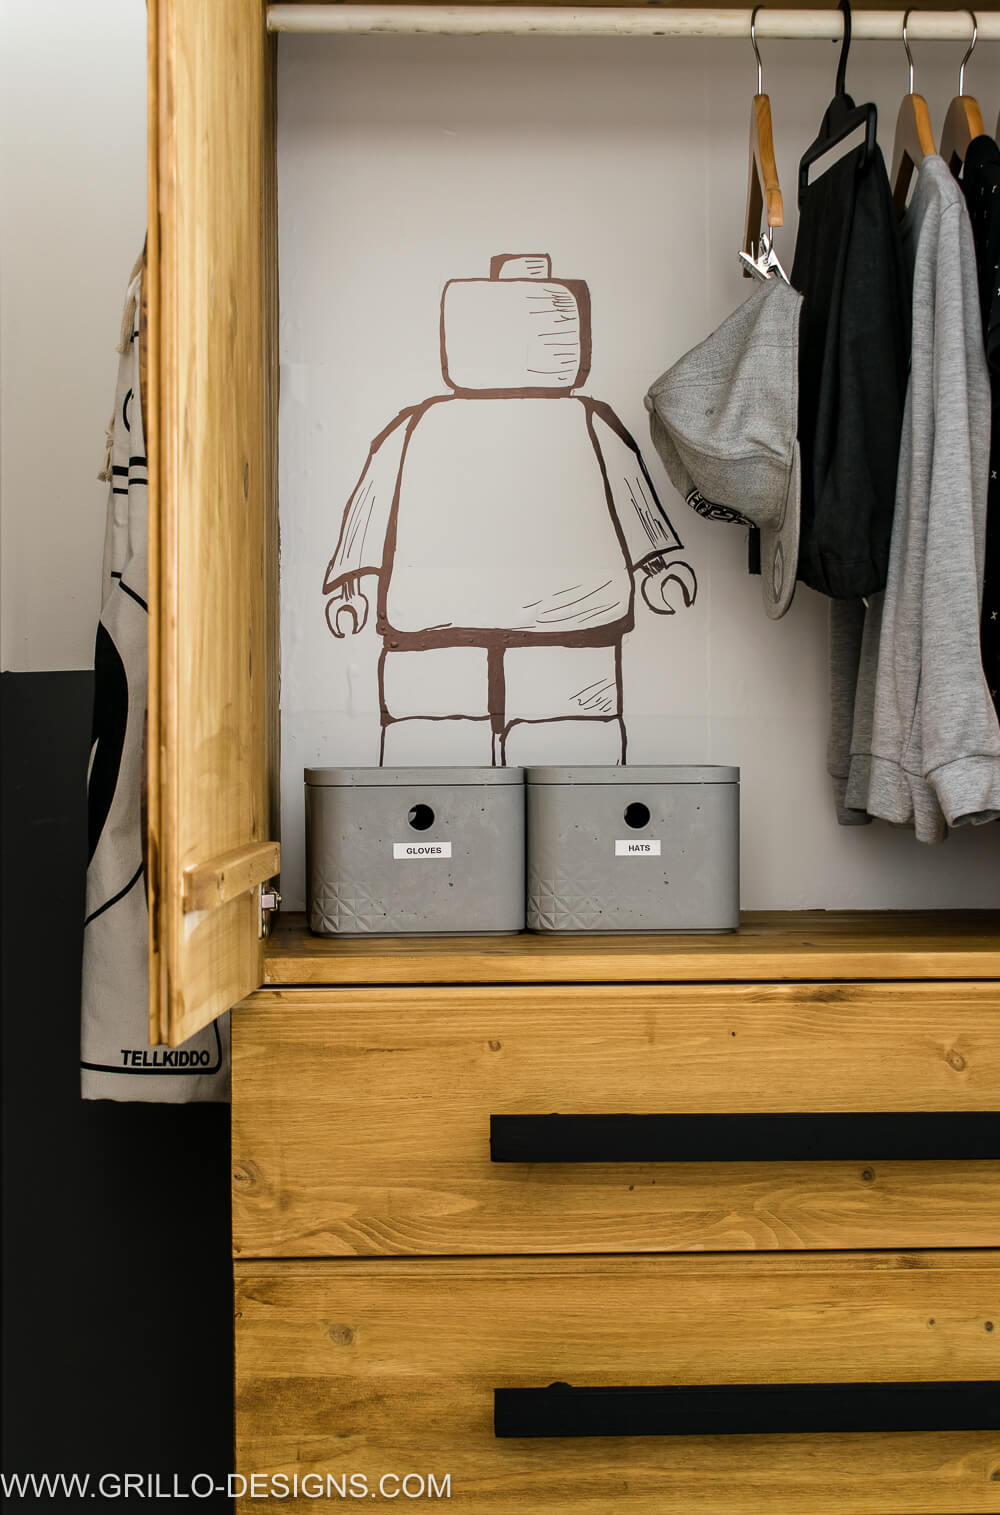 Closer look into the inside of the wardrobe. A hand drawn lego figure is seen to the left of the wardrobe